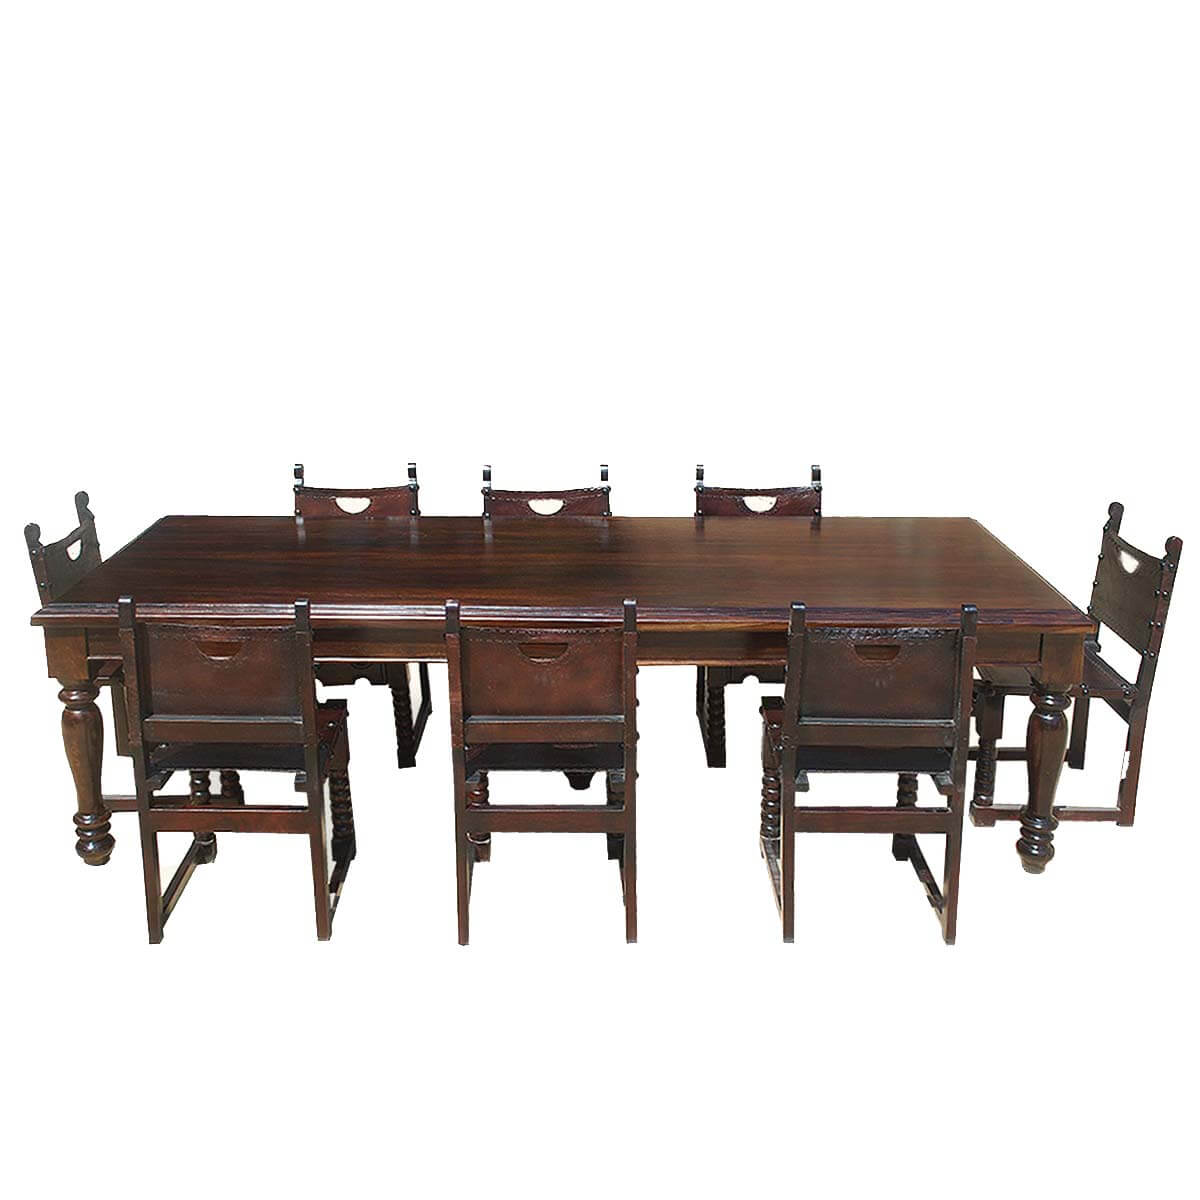 Rustic Dining Room Table Set: Large Rustic Solid Wood Dining Room Table W 8 Leather